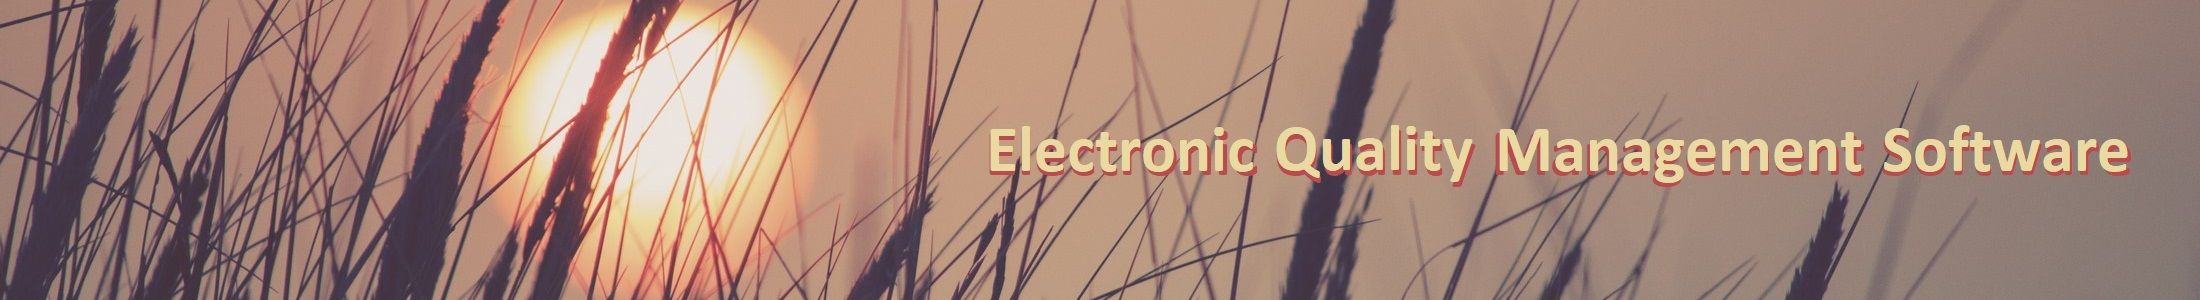 electronic quality management